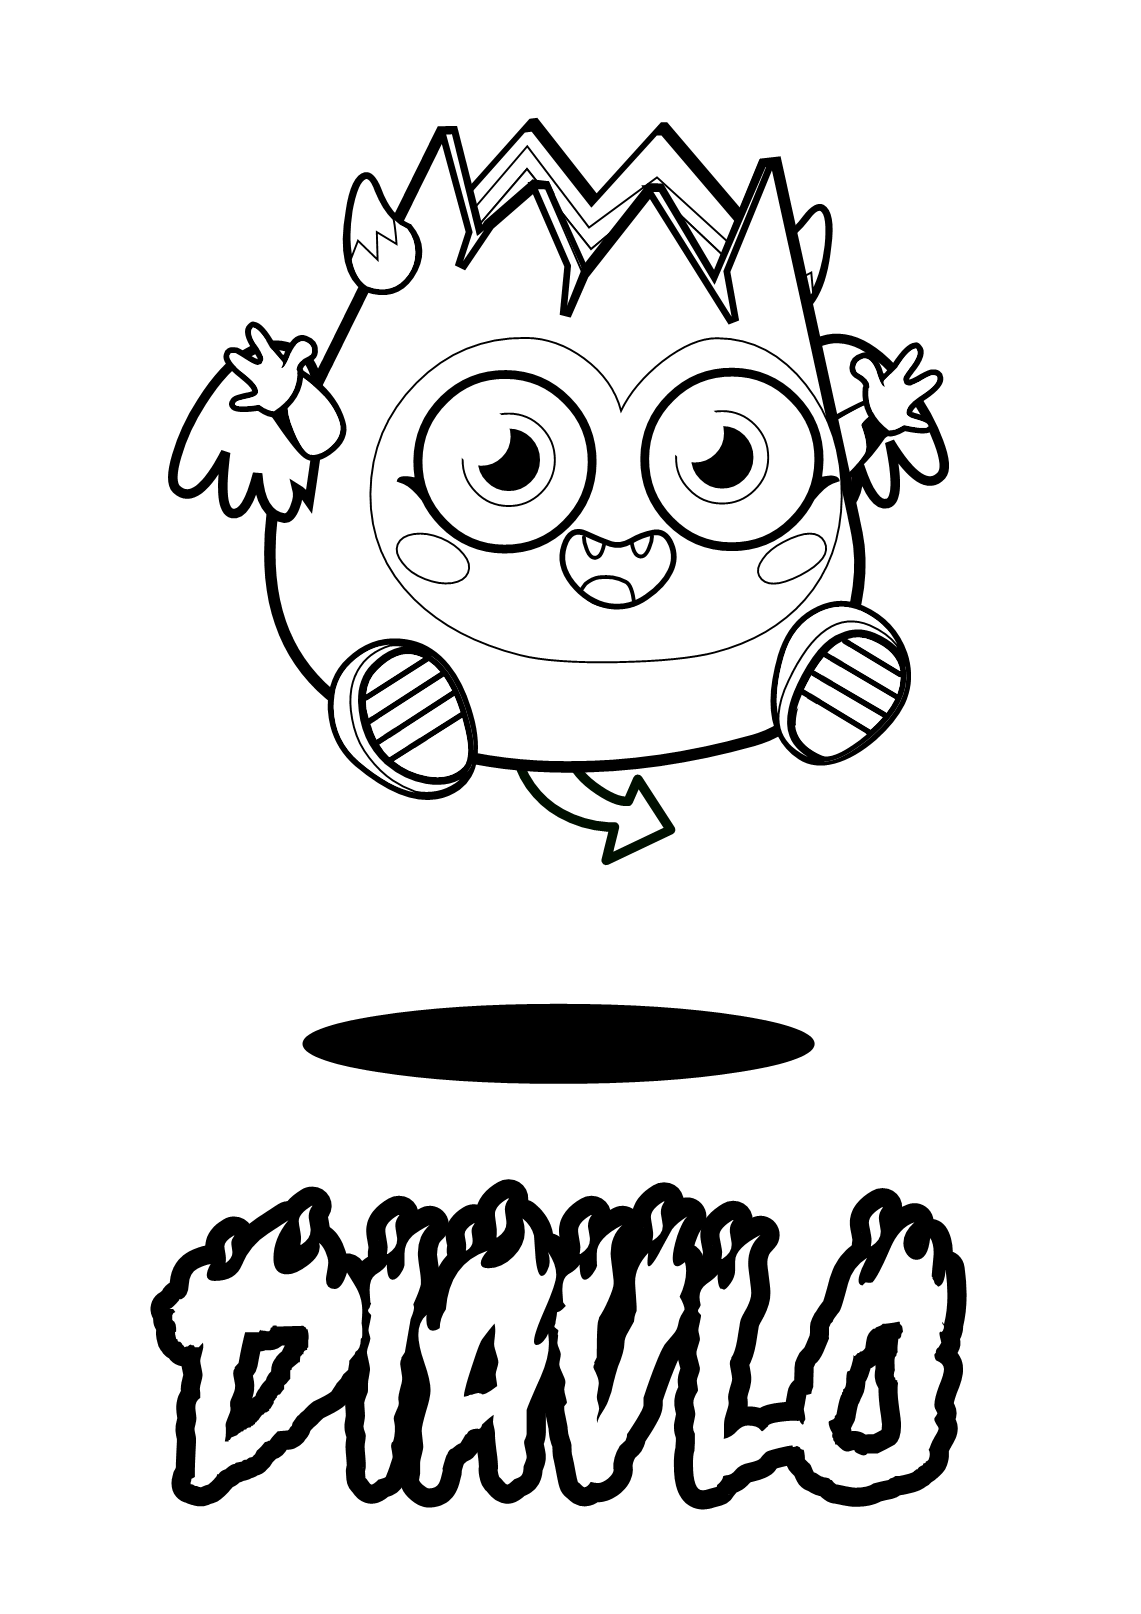 Get Out Your Crayons Because It S Art Time Print Out Your Very Own Colouring Pages Diavlo Monster Coloring Pages Coloring Pages For Kids Moshi Monsters